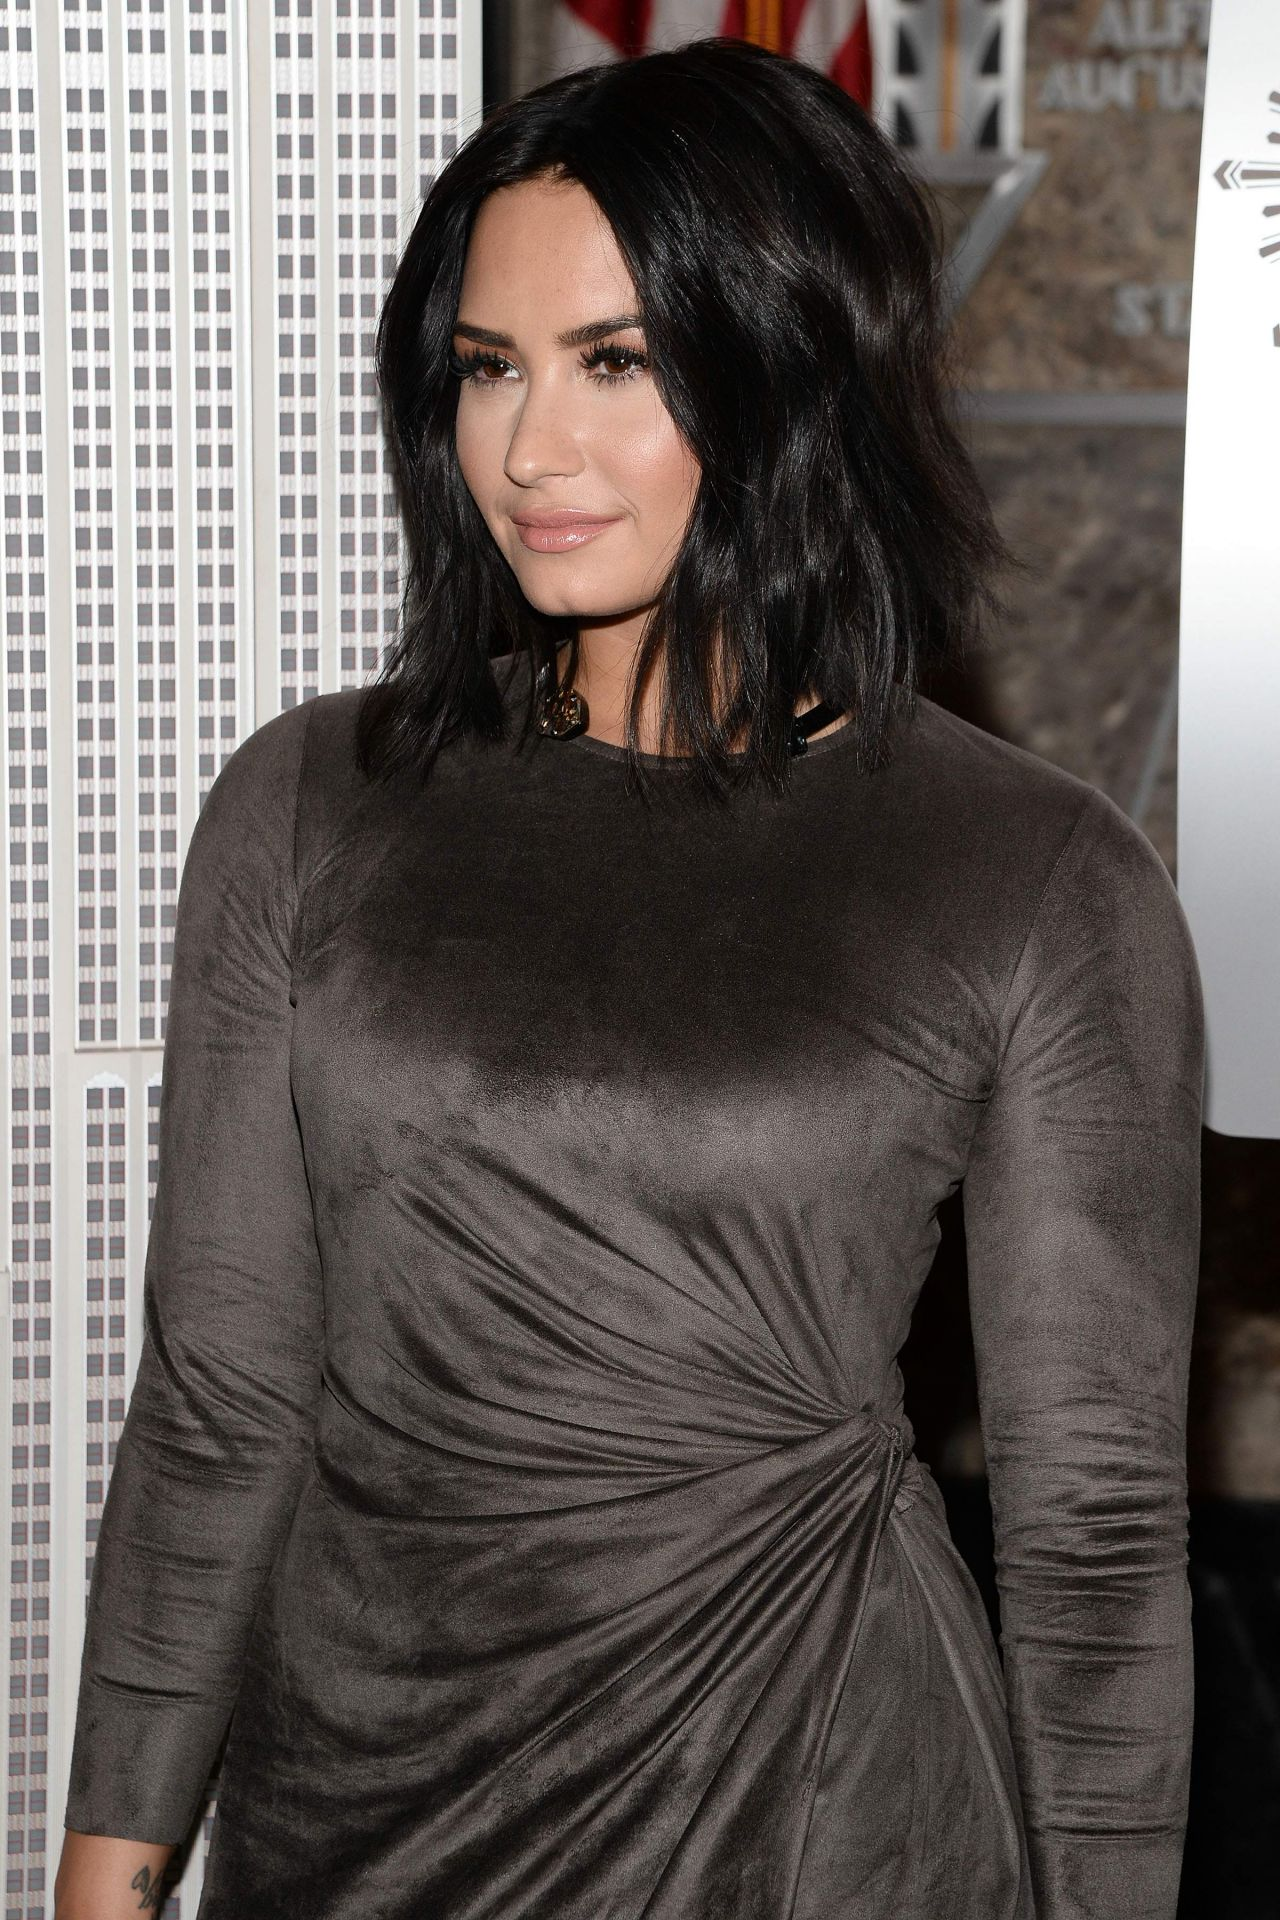 Demi Lovato At The Empire State Building In Nyc 3 20 2017